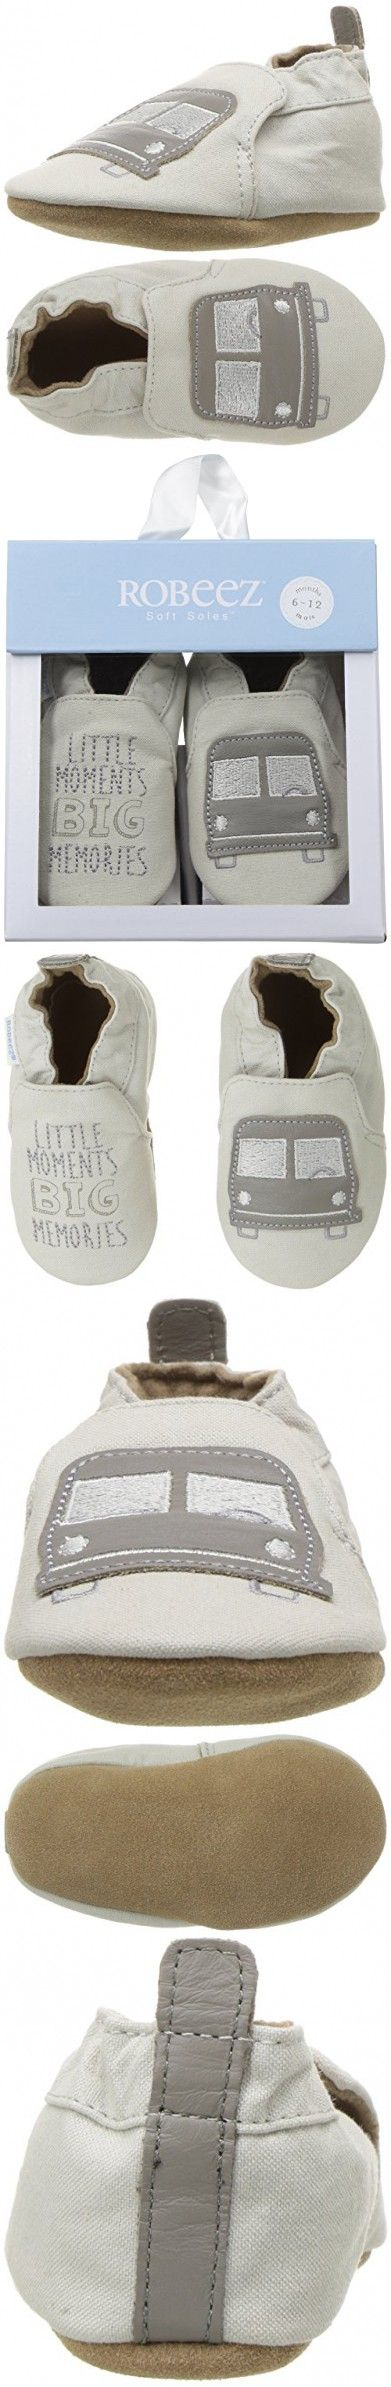 Robeez Boys' Puppy Love Crib Shoe, Big Bus Taupe, 12-18 Months M US Infant